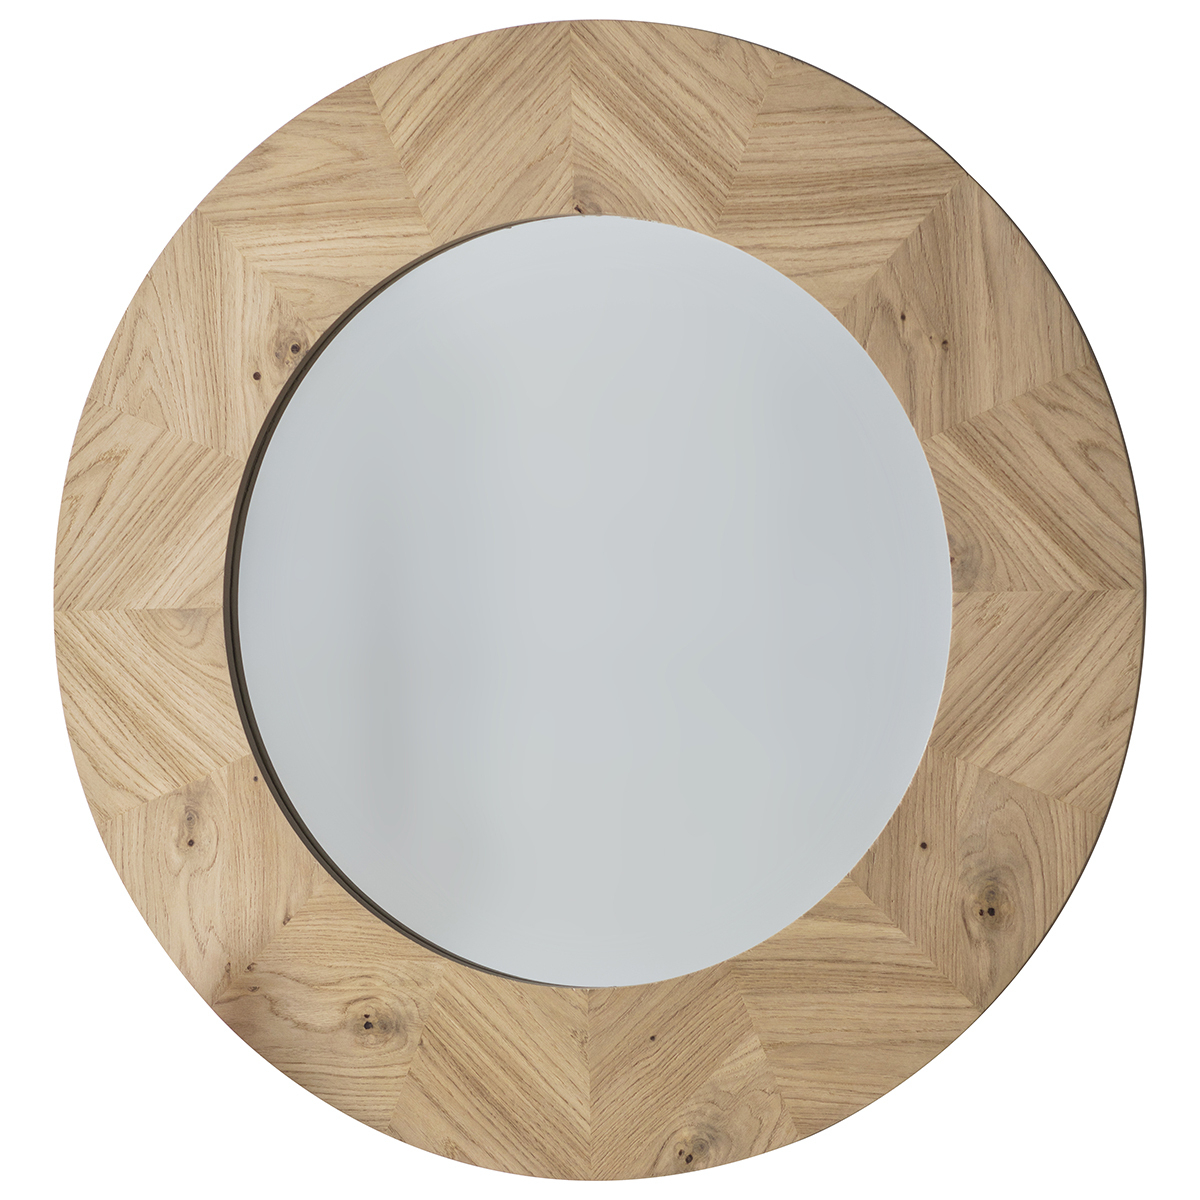 Natural Manny Round Wooden Wall Mirror With Regard To Most Up To Date Round Wood Wall Mirrors (View 14 of 20)